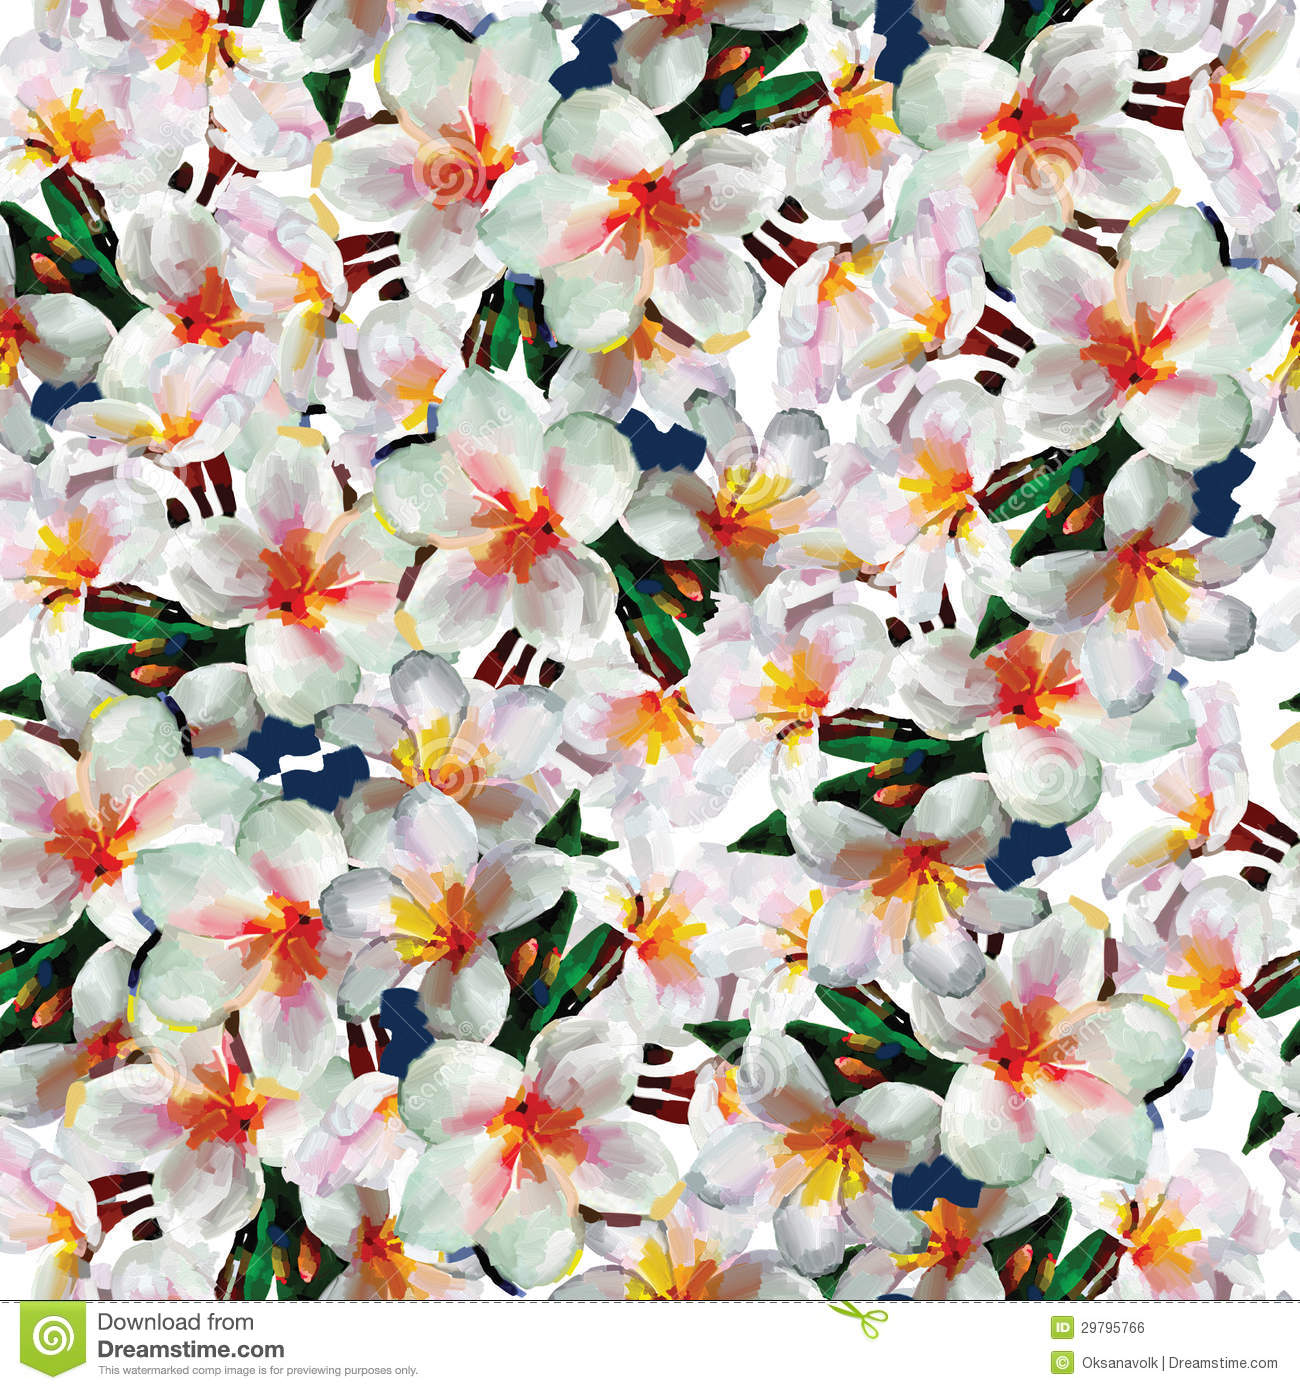 white exotic flowers seamless pattern background royalty free stock image image 29795766. Black Bedroom Furniture Sets. Home Design Ideas